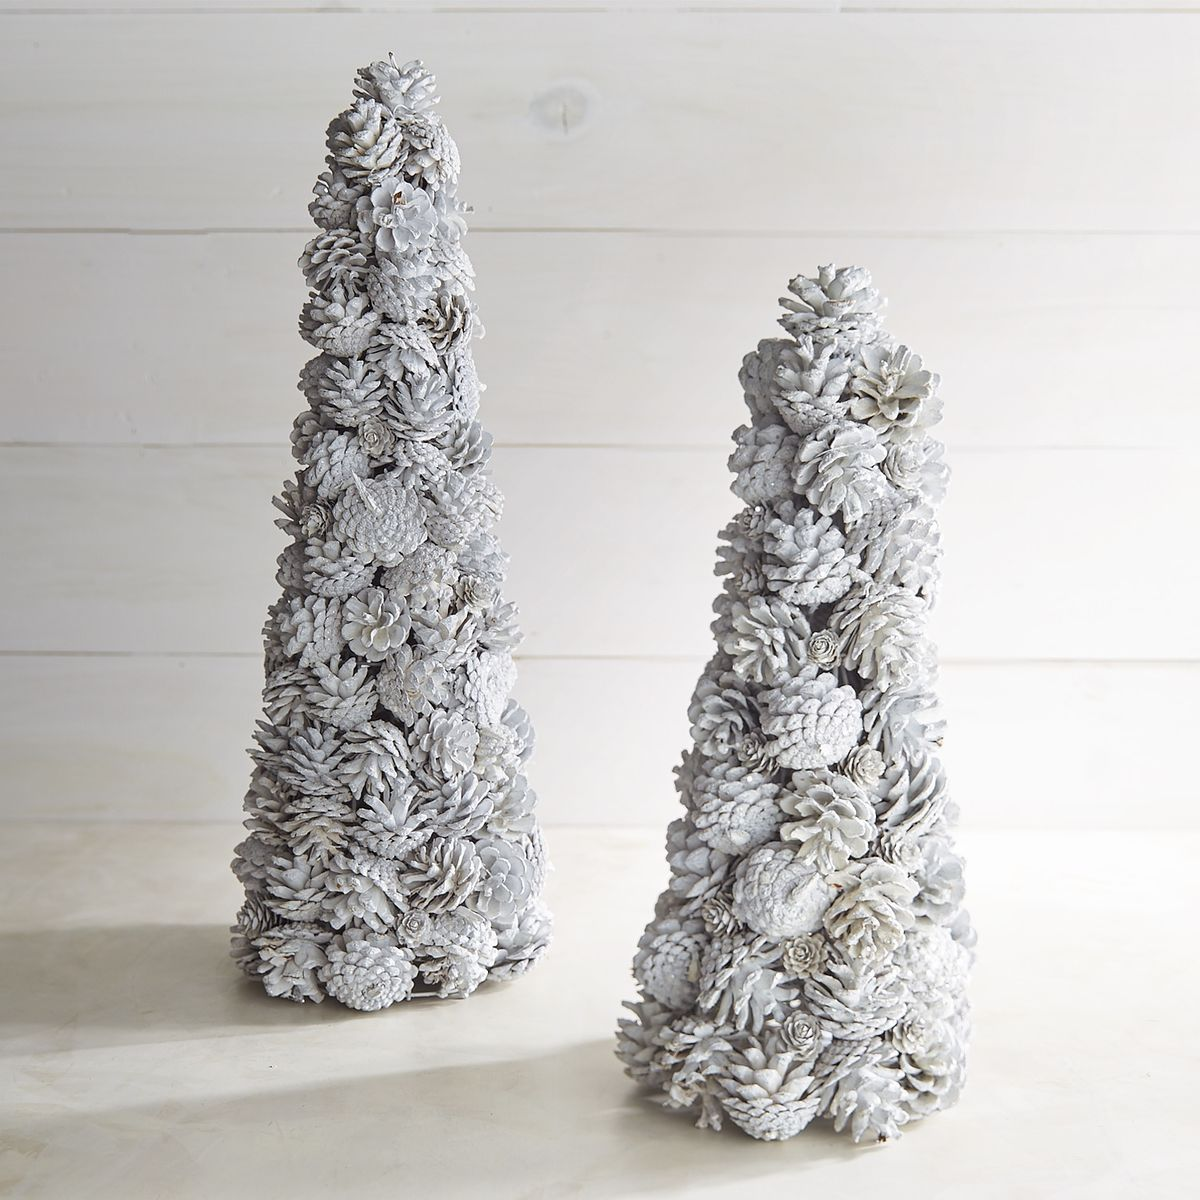 50 DIY Mini Christmas Trees | sue | Pinterest | Christmas, Mini ...